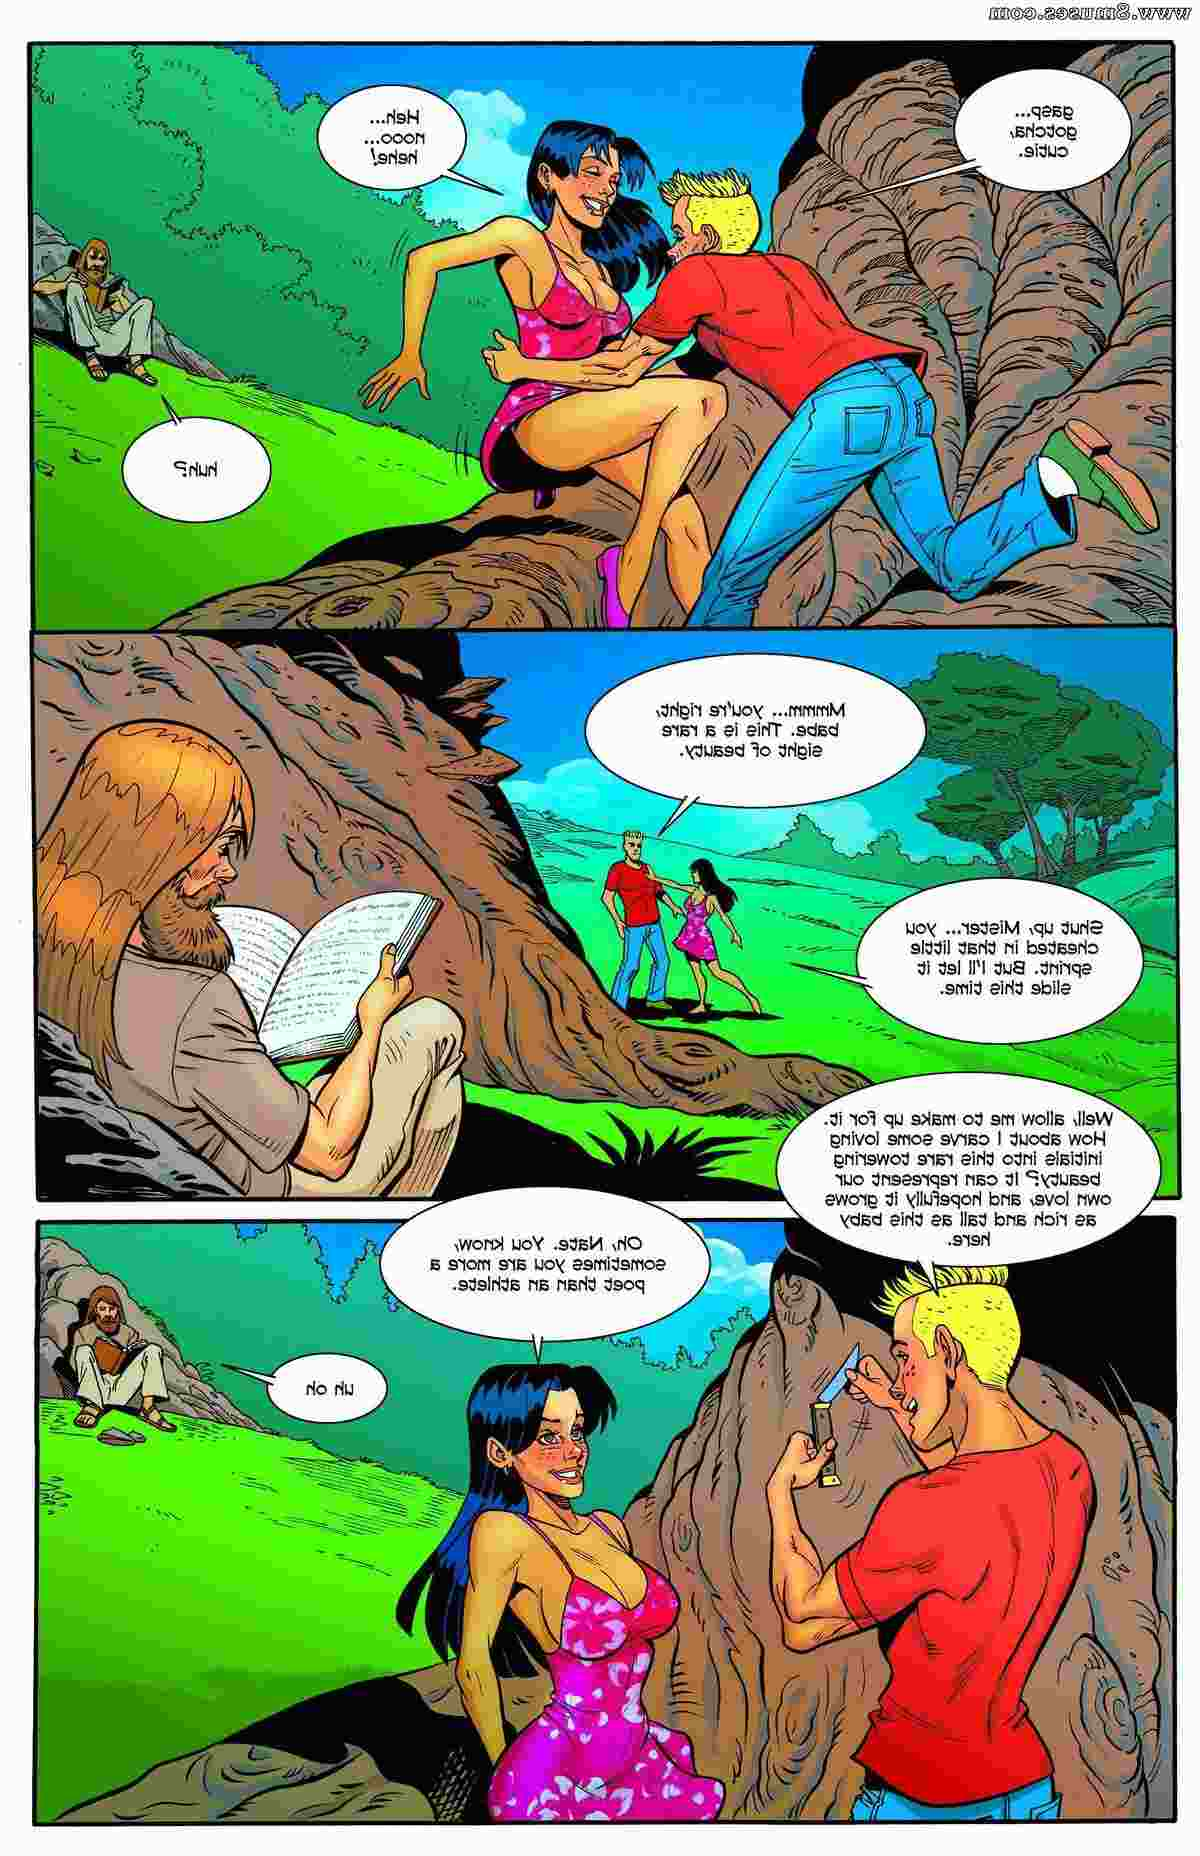 Giantess-Club-Comics/The-Legendary-Tree-Of-Paula-Bunyan The_Legendary_Tree_Of_Paula_Bunyan__8muses_-_Sex_and_Porn_Comics_6.jpg